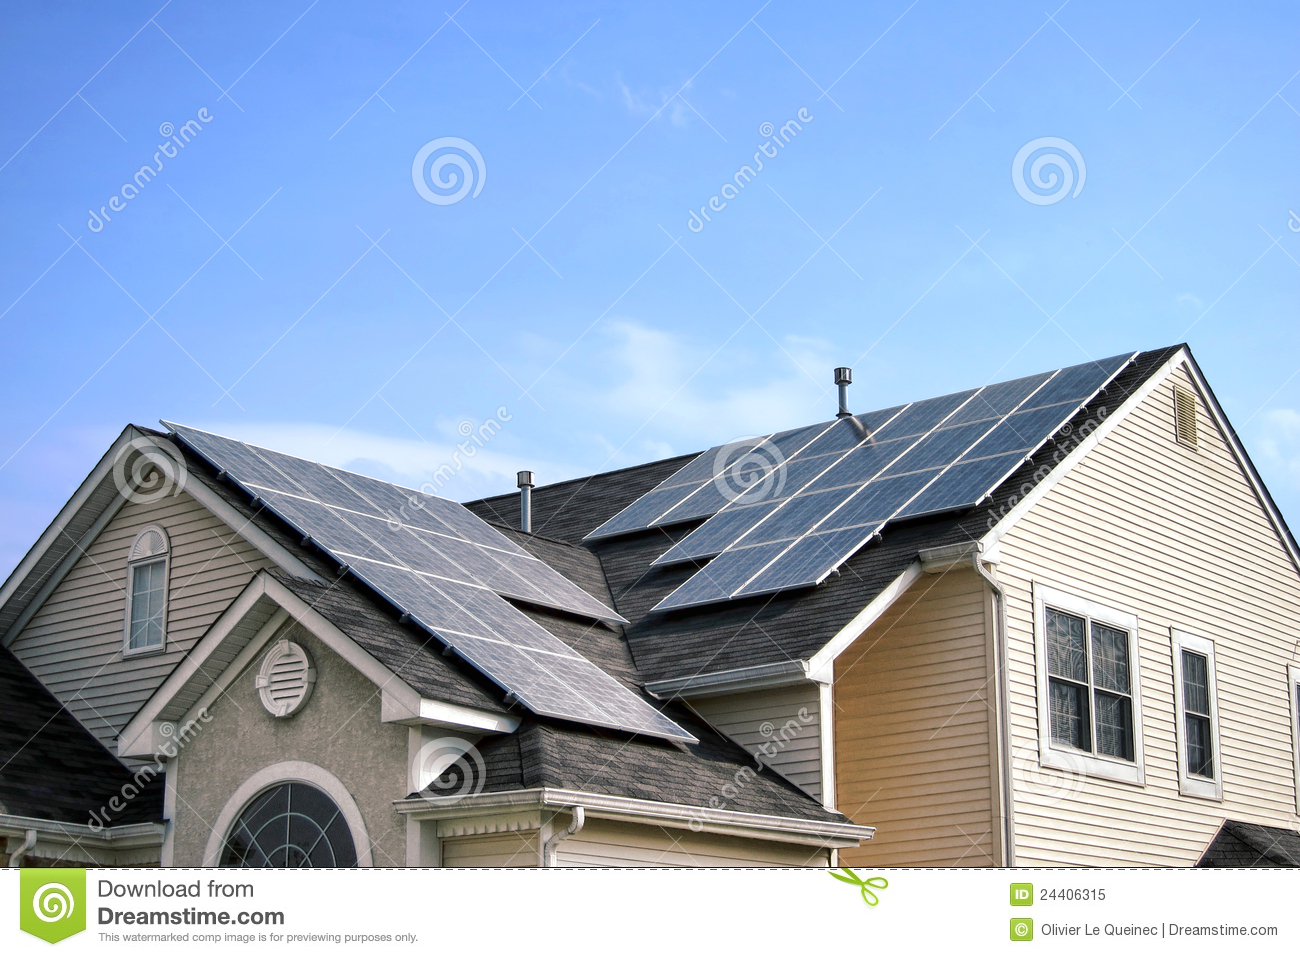 Renewable green energy solar panels on house roof stock for Free house photos